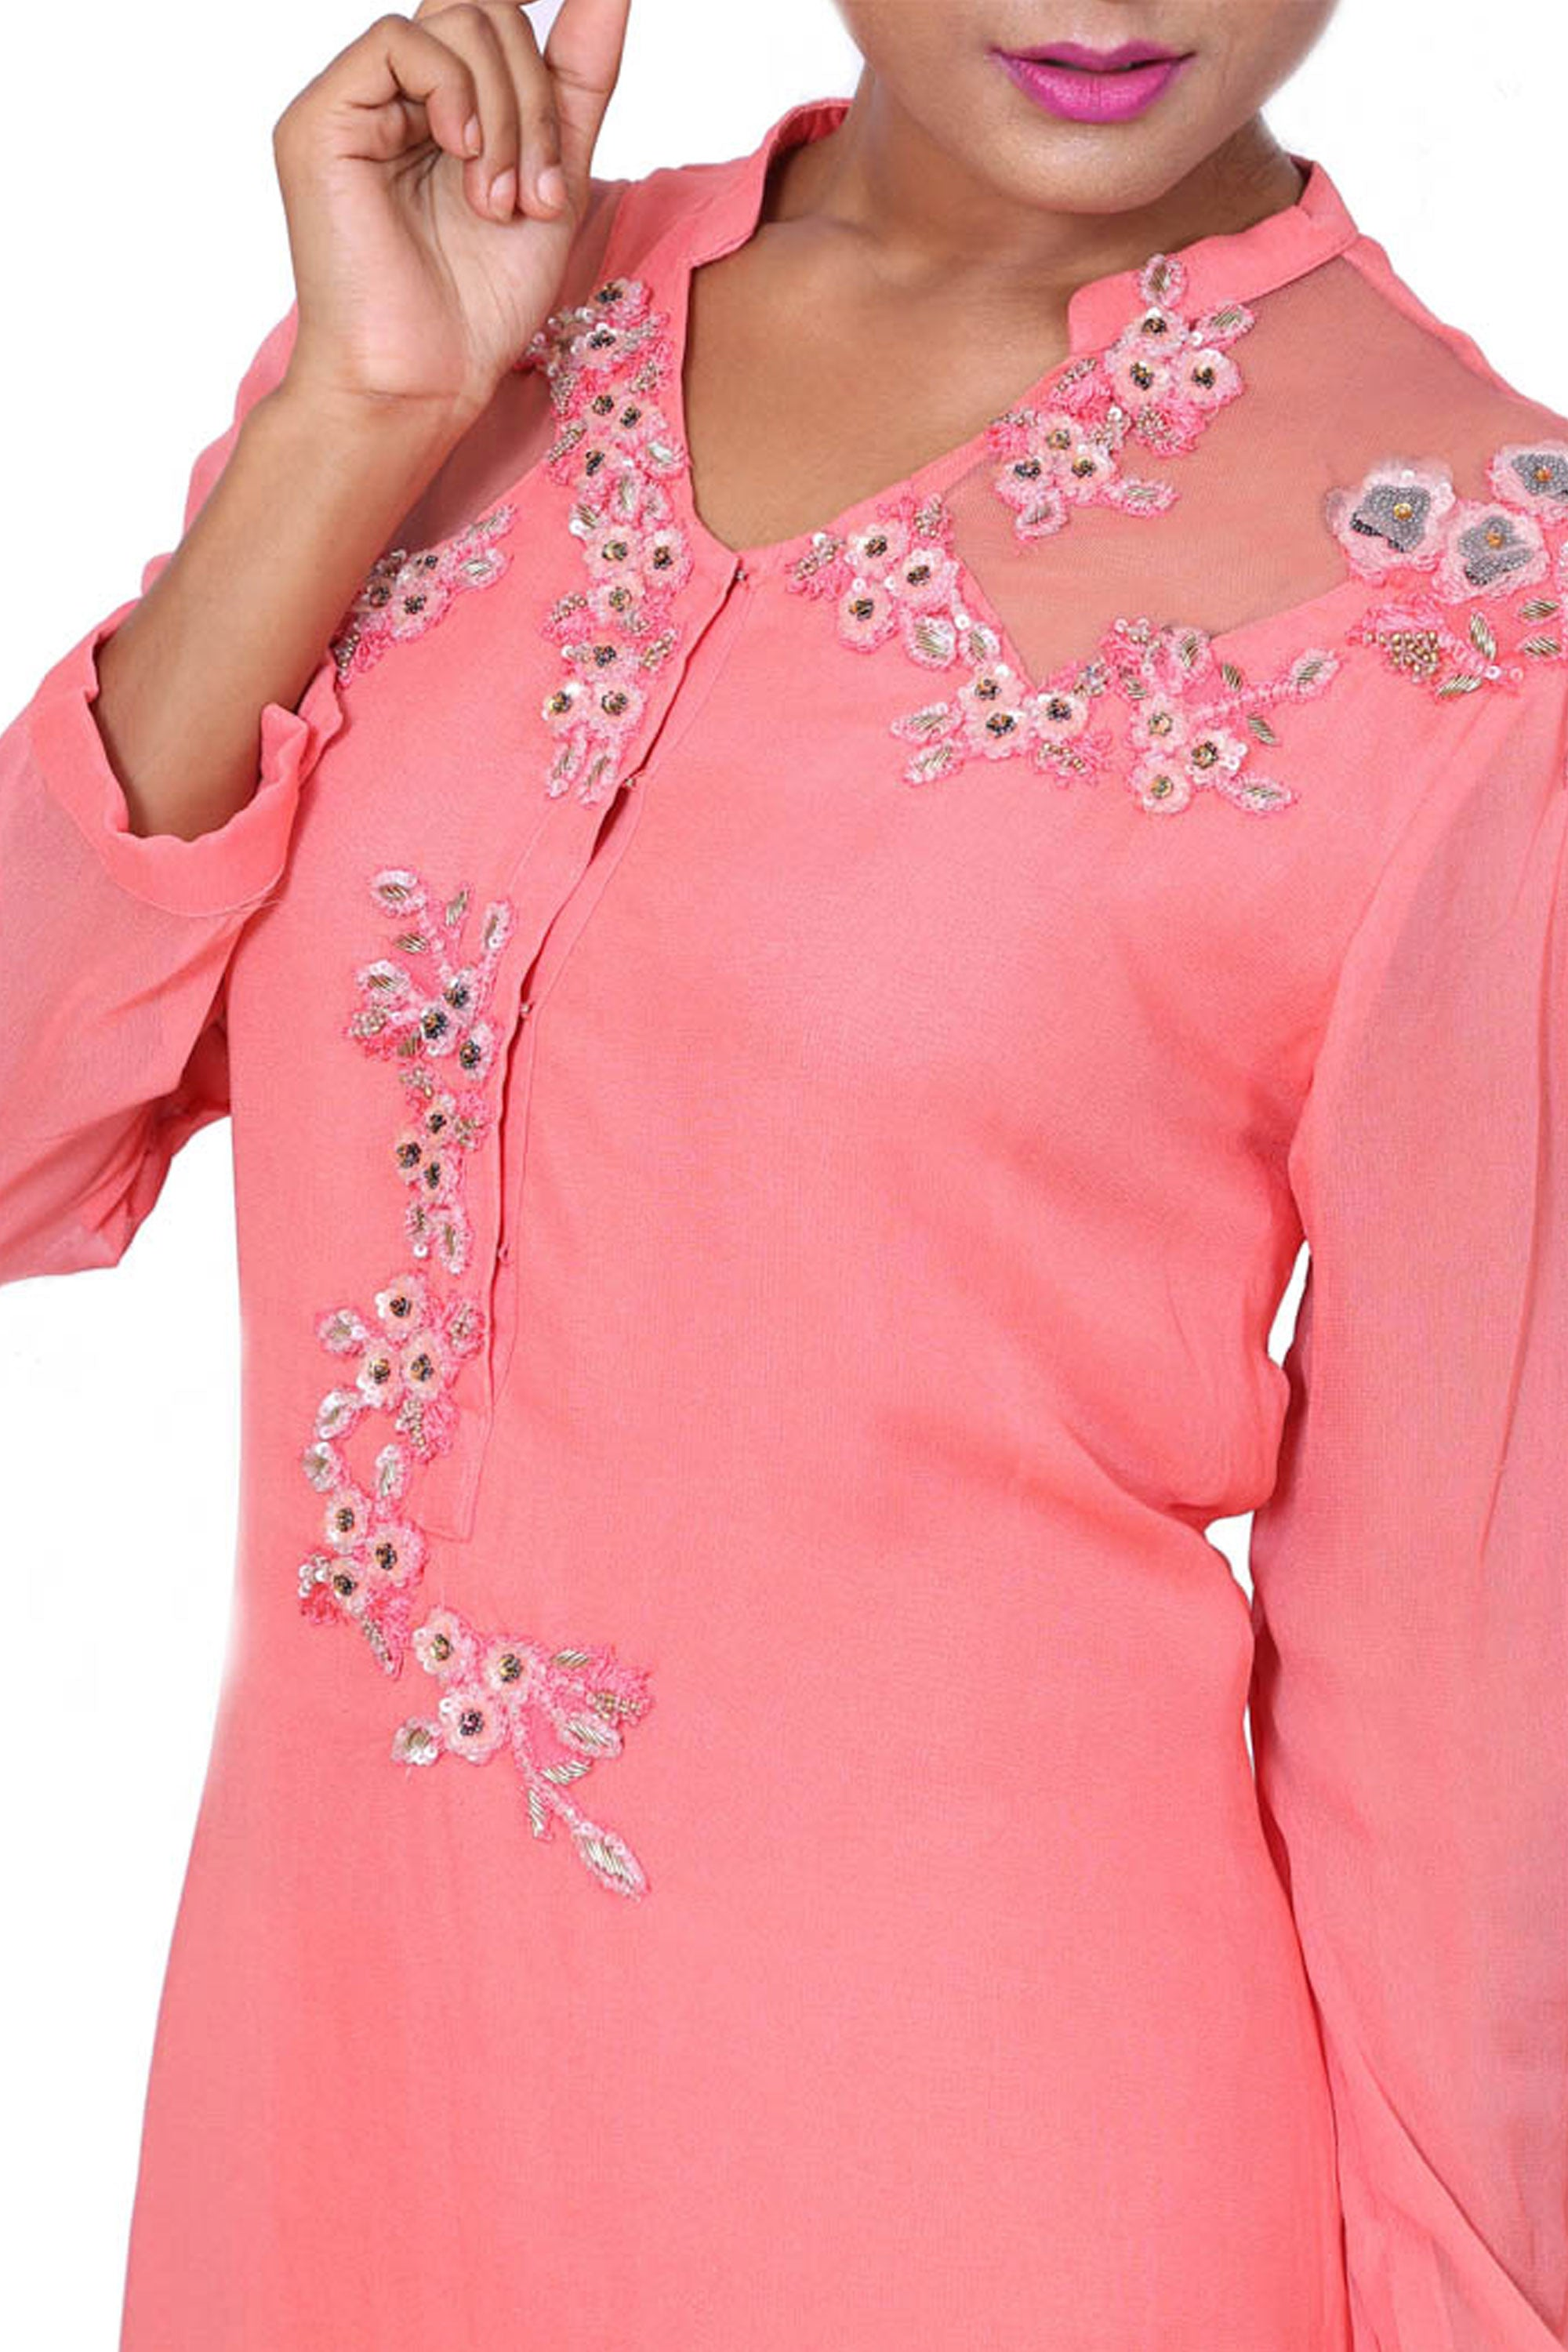 Rose Pink Sheer Net Shoulder Tunic Closeup